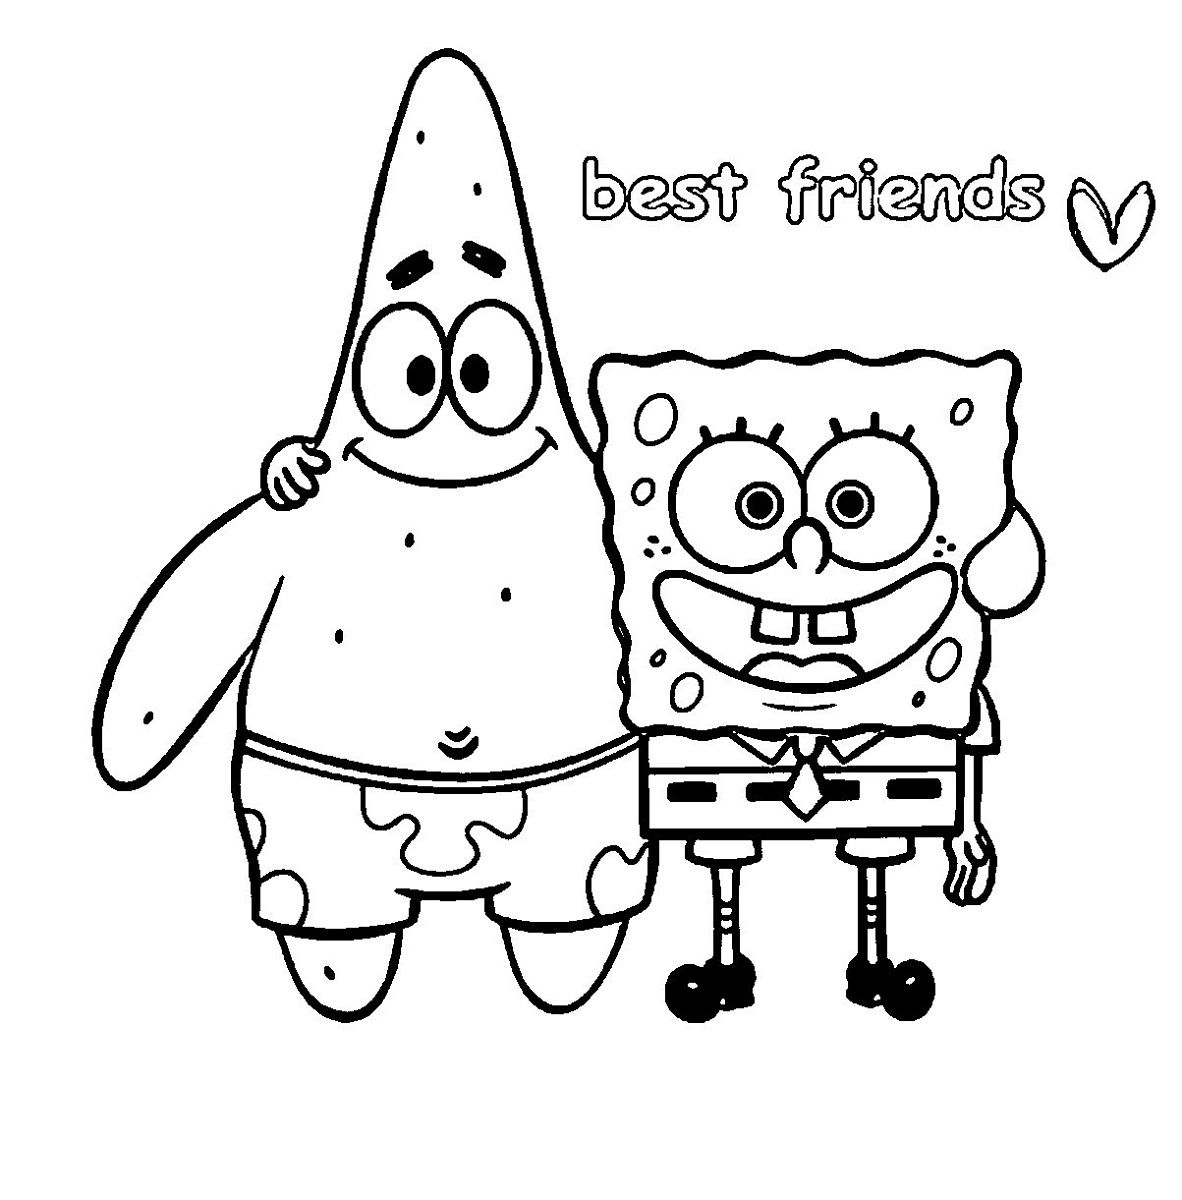 Best Friend Coloring Pages Best Friend Drawings Bff Drawings Cool Coloring Pages